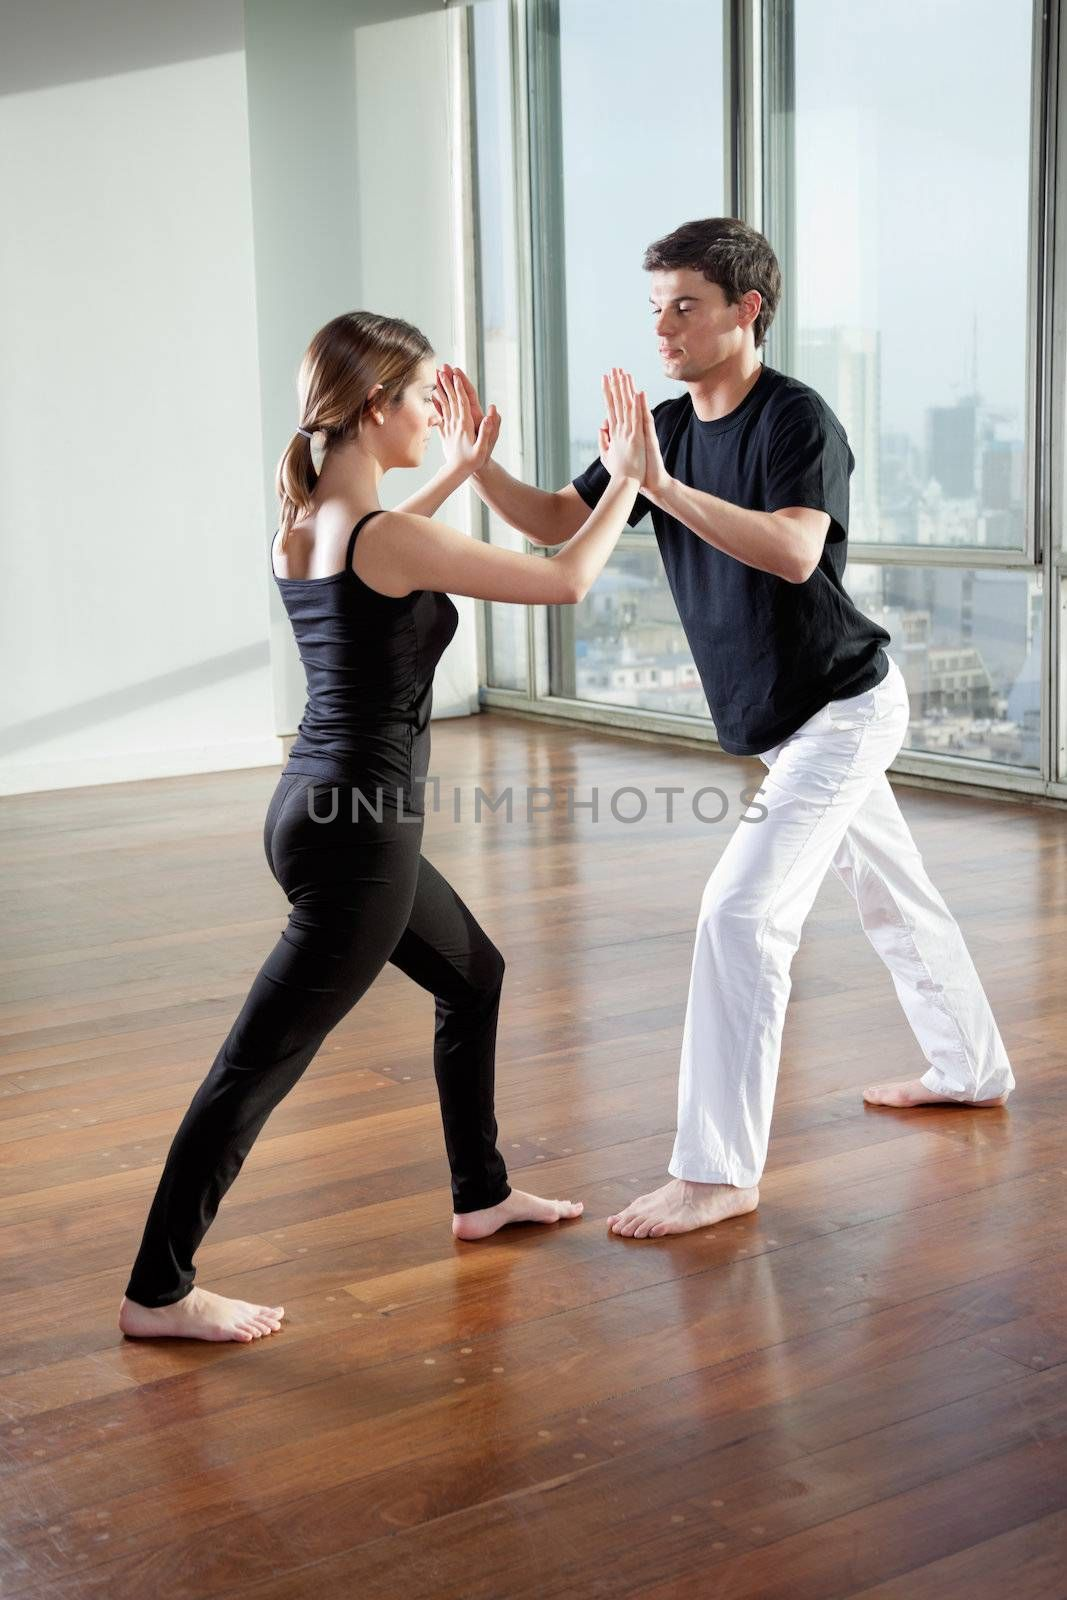 Full length of young yoga partners practicing yoga exercise at gym